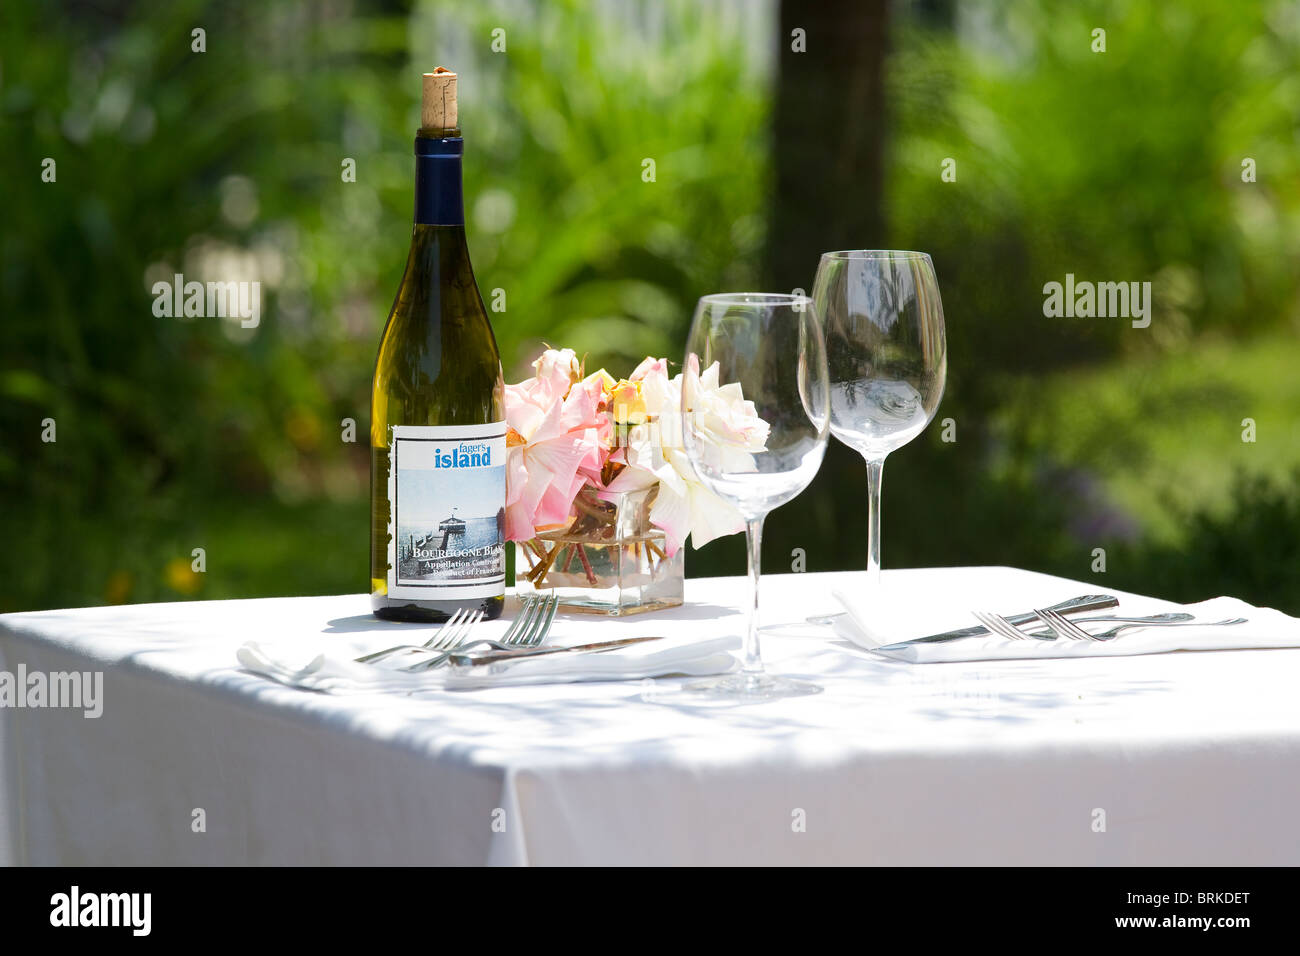 Wine Glasses And Wine Bottle On Table With White Table Cloth Outside Stock Photo Alamy